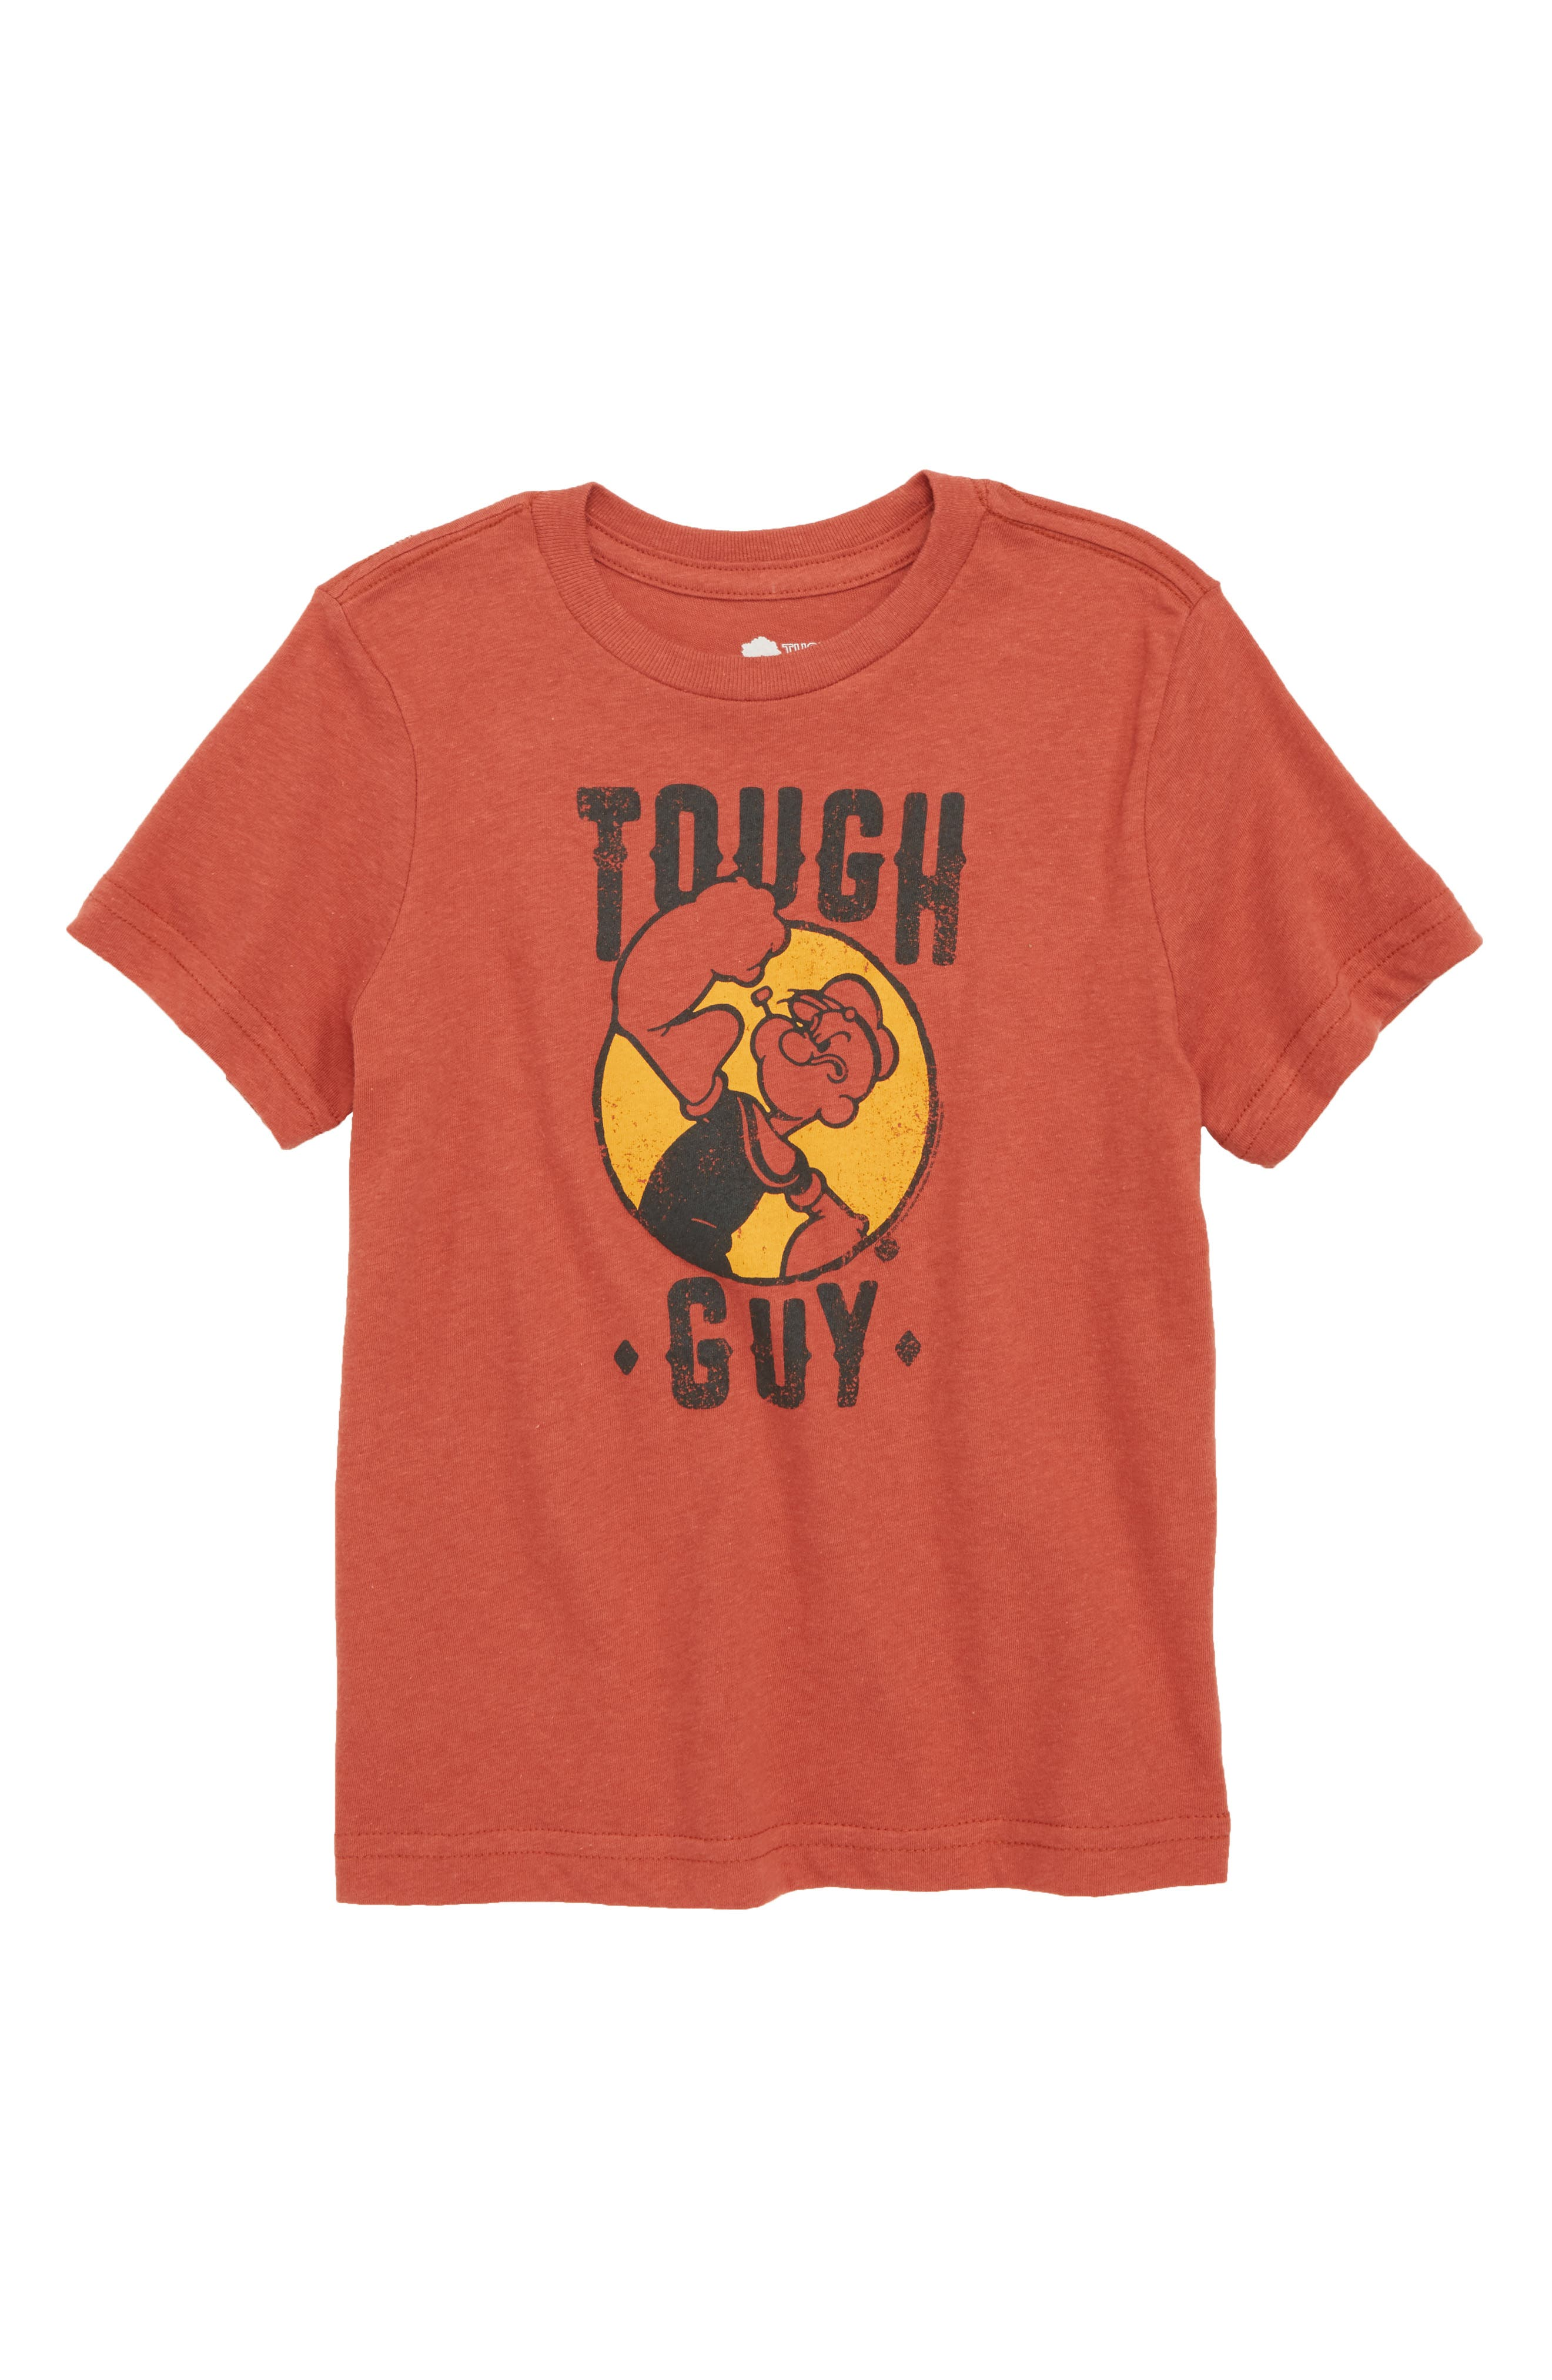 Graphic T-Shirt,                             Main thumbnail 1, color,                             Red Ochre Heather Tough Guy